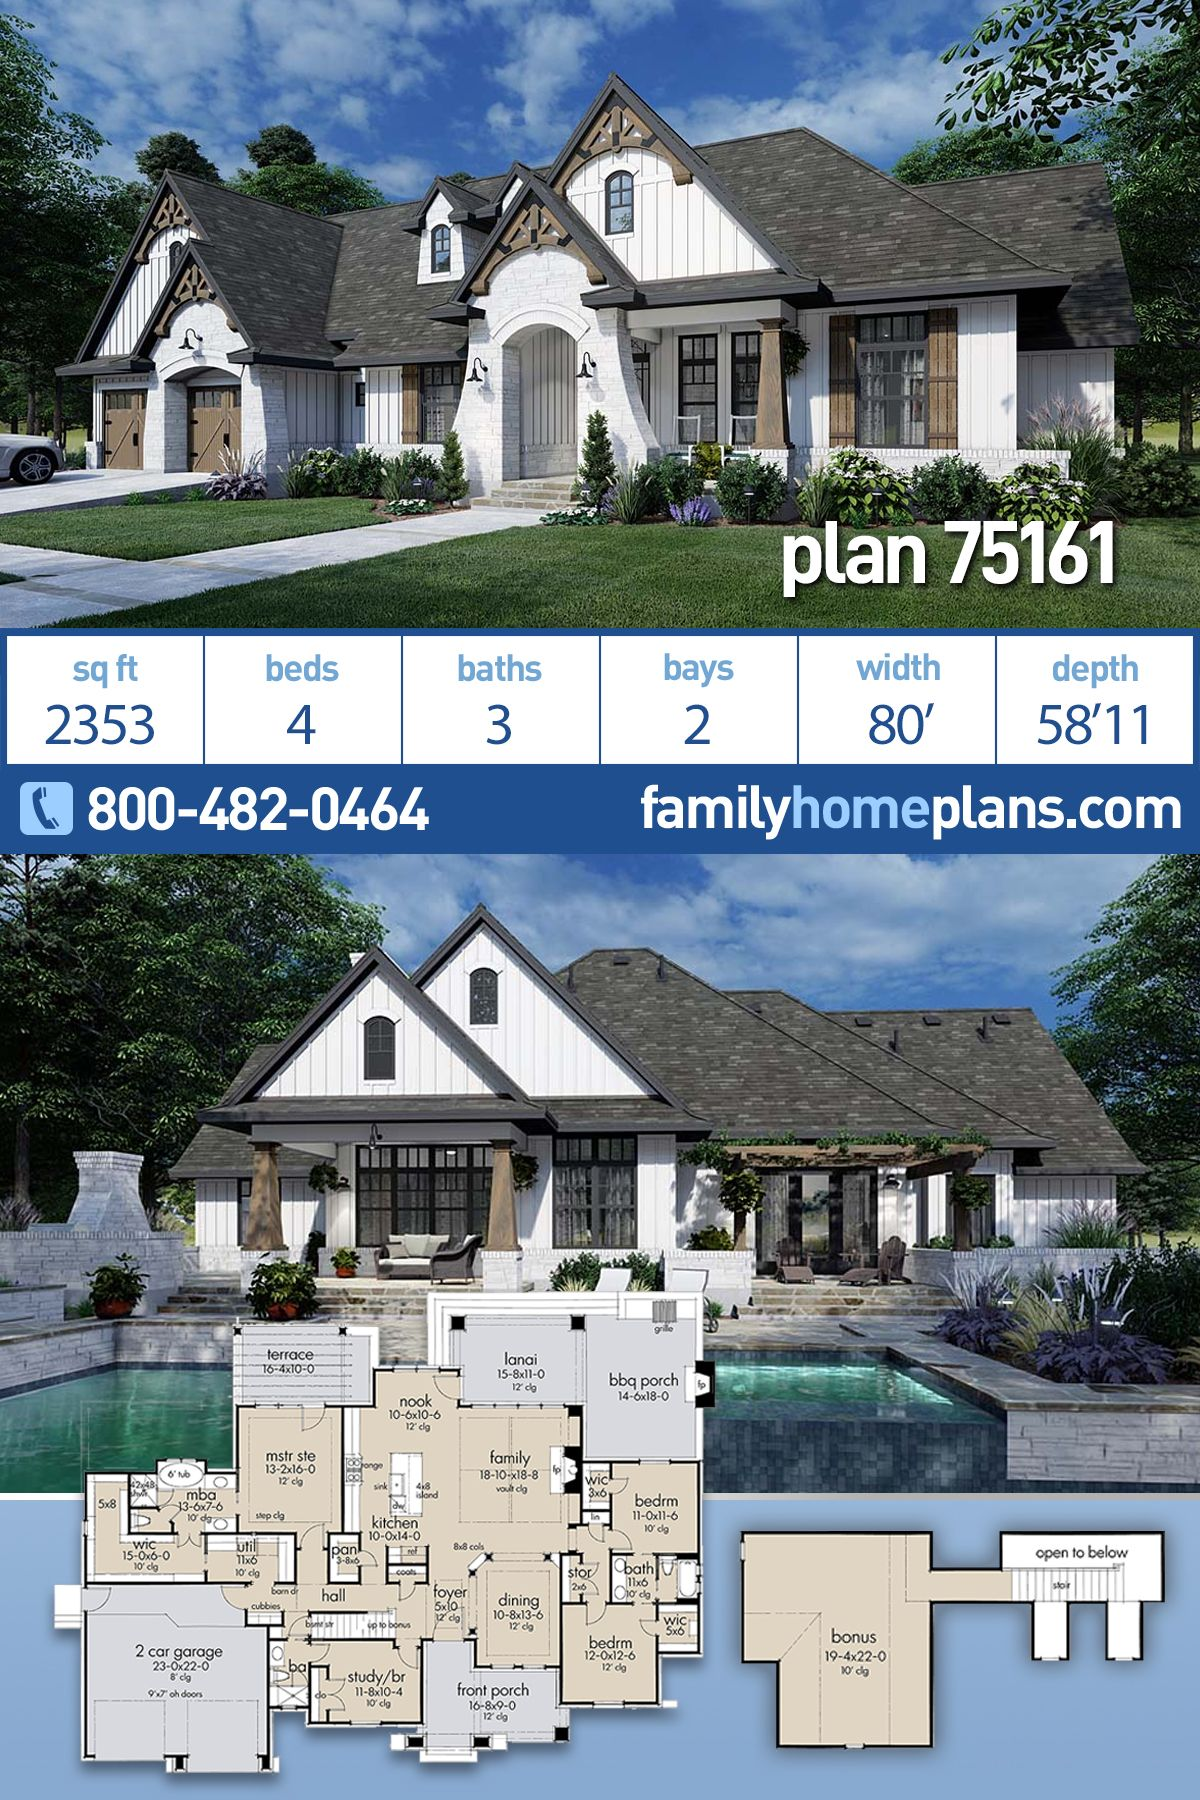 Traditional Style House Plan 75161 With 4 Bed 3 Bath 2 Car Garage Farmhouse Plans Modern Farmhouse Plans Family House Plans